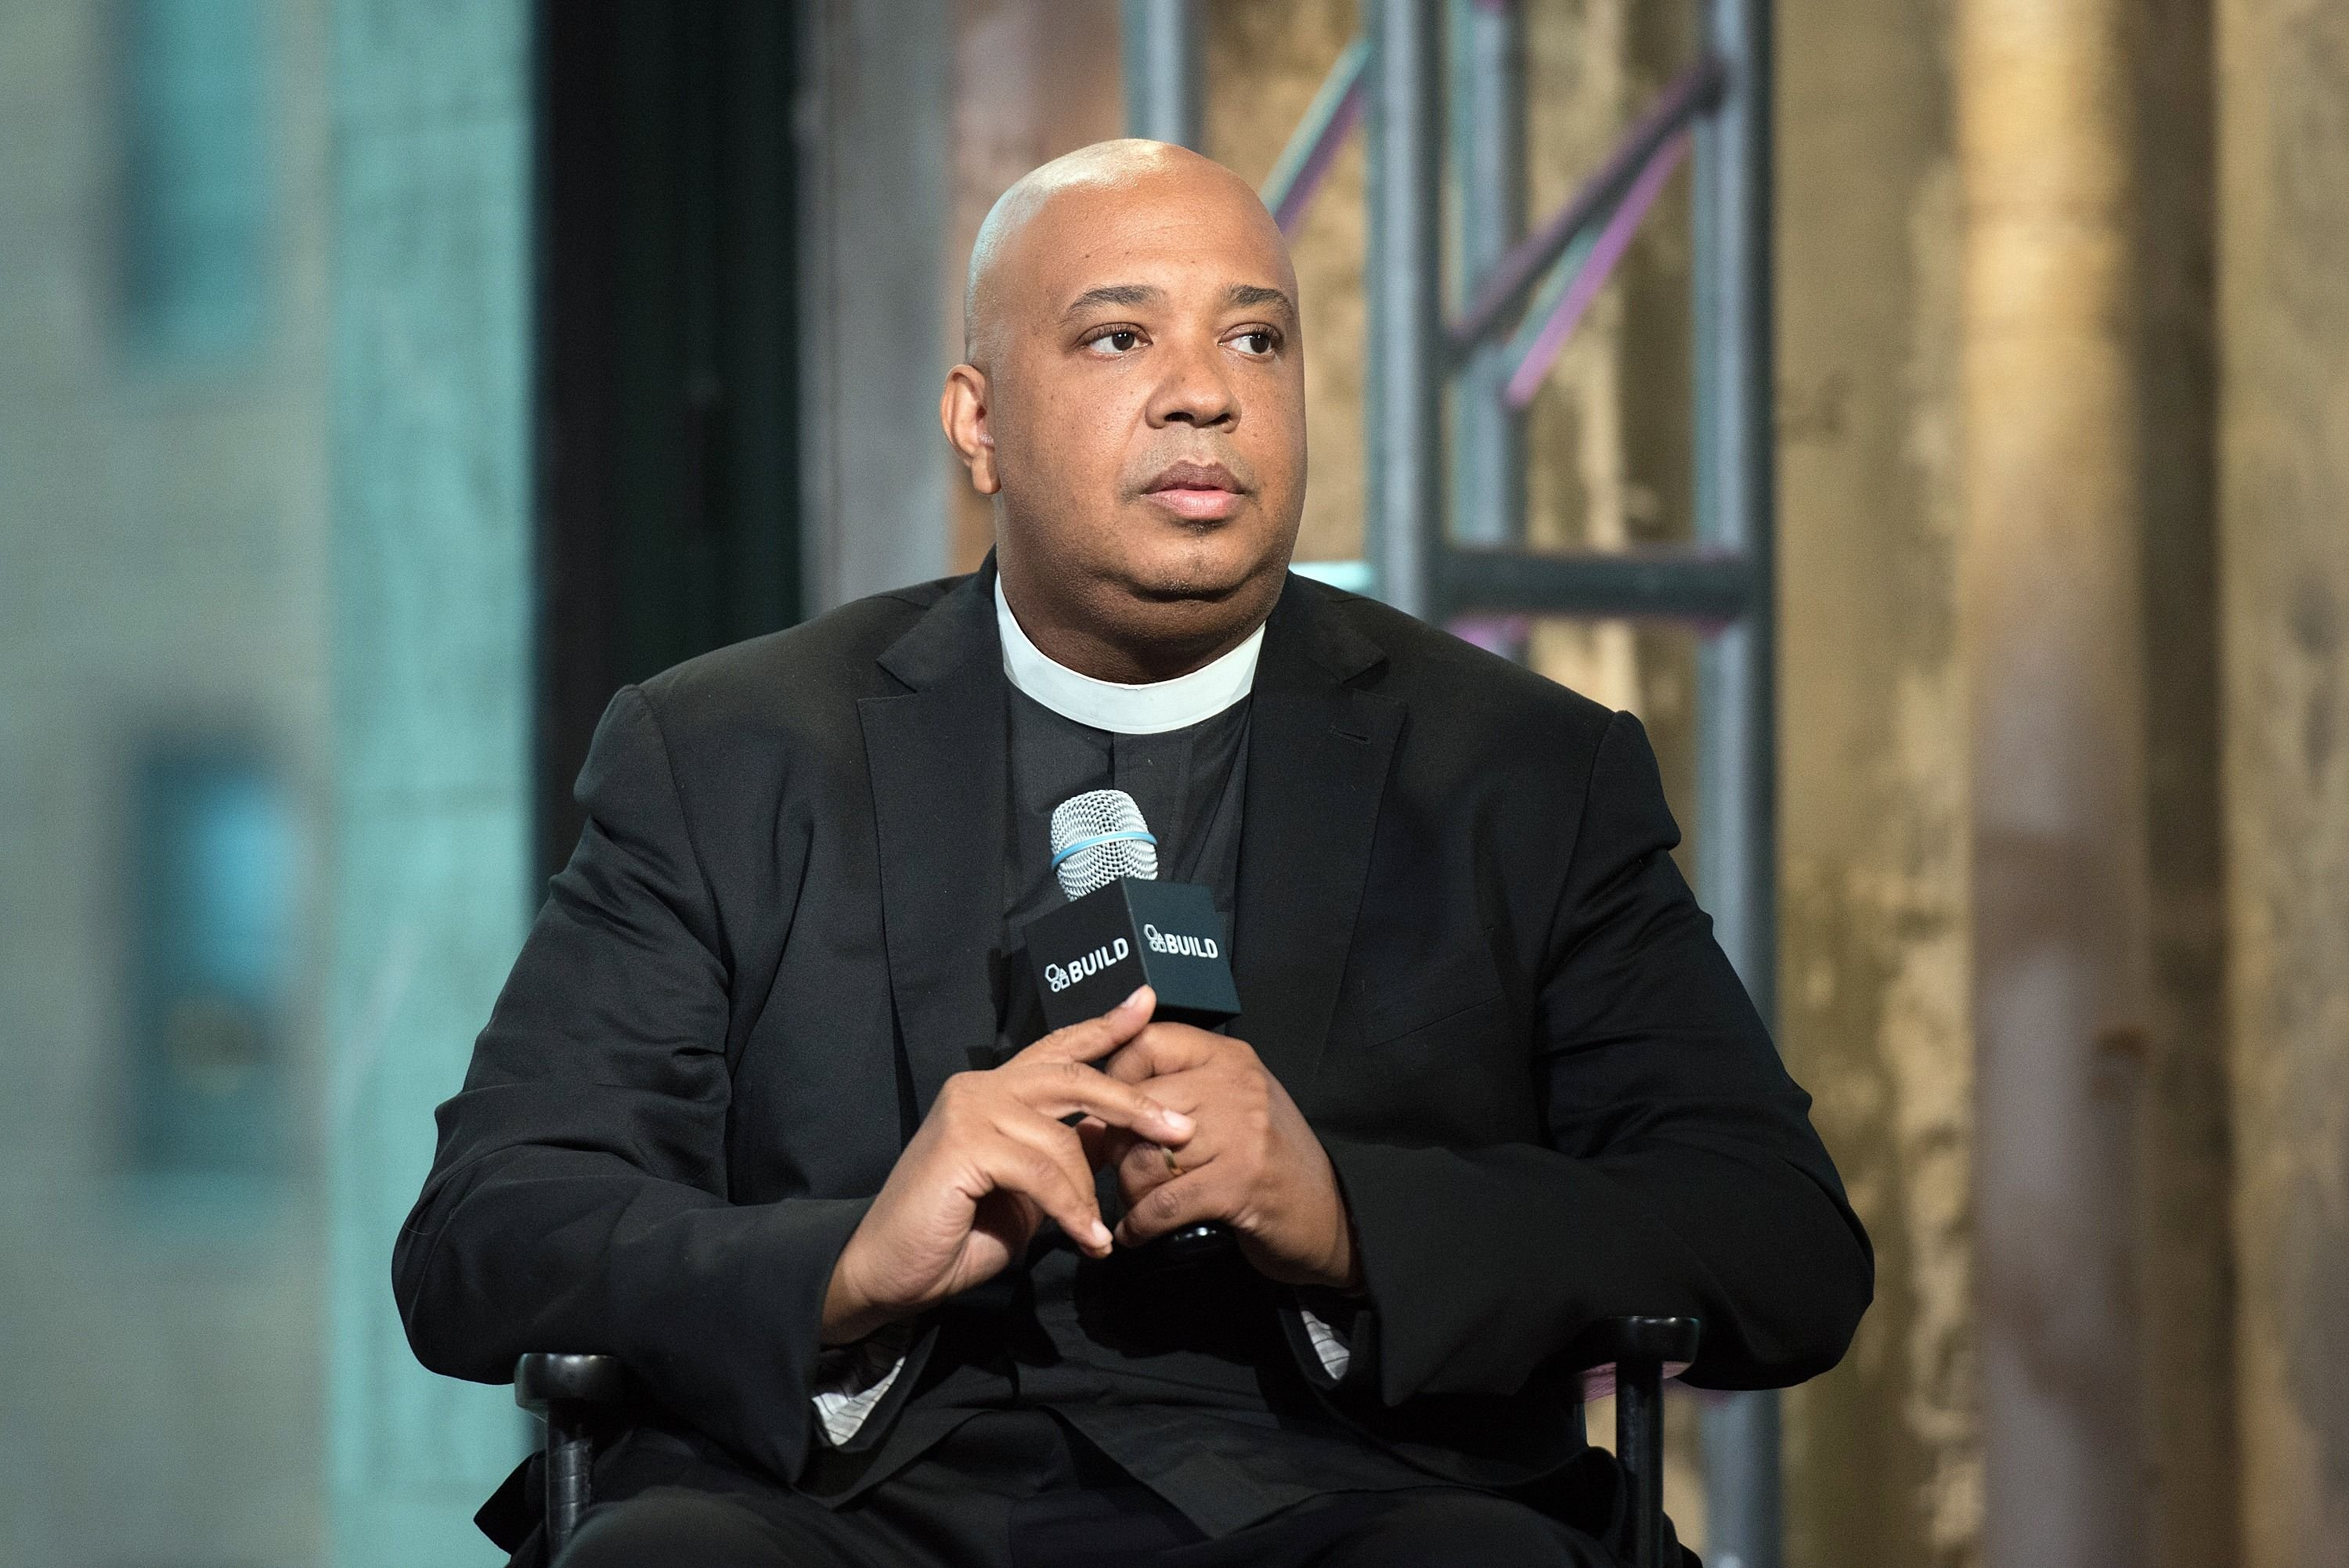 Joseph 'Rev Run' Simmons at AOL BUILD presents: Rev Run and Justine Simmons at AOL Studios In New York on October 13, 2015 in New York City | Photo: Getty Images